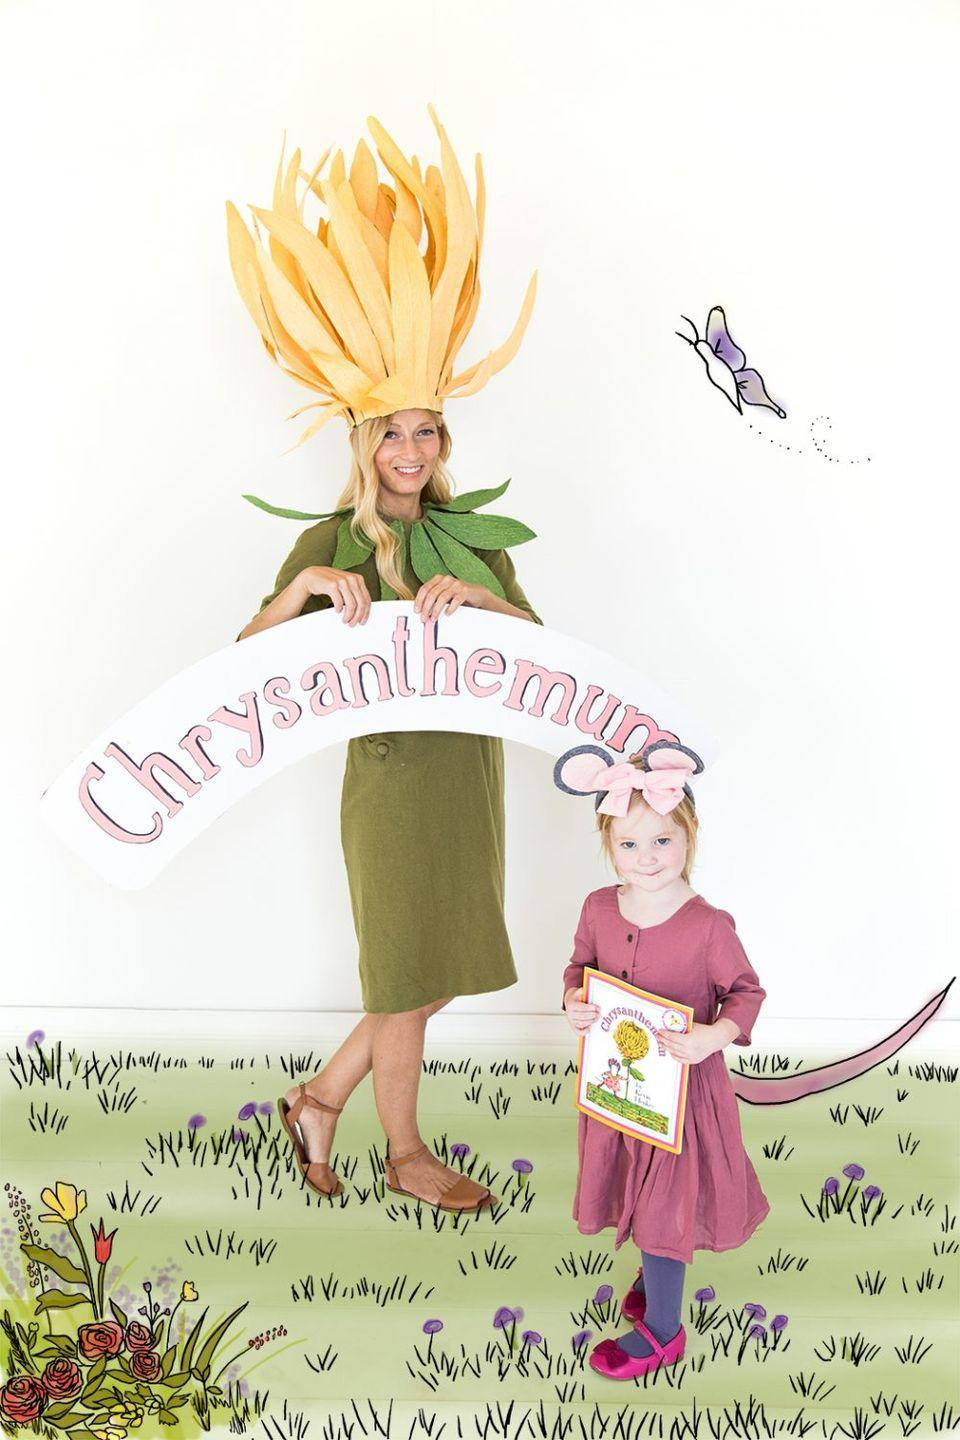 """<p>This 1991 picture book has captured the hearts of thousands of children since its publication—mainly because of its positive messages about self-acceptance. Here, the little mouse with the long name transforms into a charming Halloween costume.</p><p><strong>Get the tutorial at <a href=""""http://thehousethatlarsbuilt.com/2015/10/chrysanthemum-mom-and-daughter-costume.html/"""" rel=""""nofollow noopener"""" target=""""_blank"""" data-ylk=""""slk:The House that Lars Built"""" class=""""link rapid-noclick-resp"""">The House that Lars Built</a>.</strong></p><p><strong><a class=""""link rapid-noclick-resp"""" href=""""https://go.redirectingat.com?id=74968X1596630&url=https%3A%2F%2Fwww.walmart.com%2Fsearch%2F%3Fquery%3Dchildrens%2Bbooks&sref=https%3A%2F%2Fwww.thepioneerwoman.com%2Fholidays-celebrations%2Fg37014285%2Fbook-character-costumes%2F"""" rel=""""nofollow noopener"""" target=""""_blank"""" data-ylk=""""slk:SHOP CHILDREN'S BOOKS"""">SHOP CHILDREN'S BOOKS</a><br></strong></p>"""